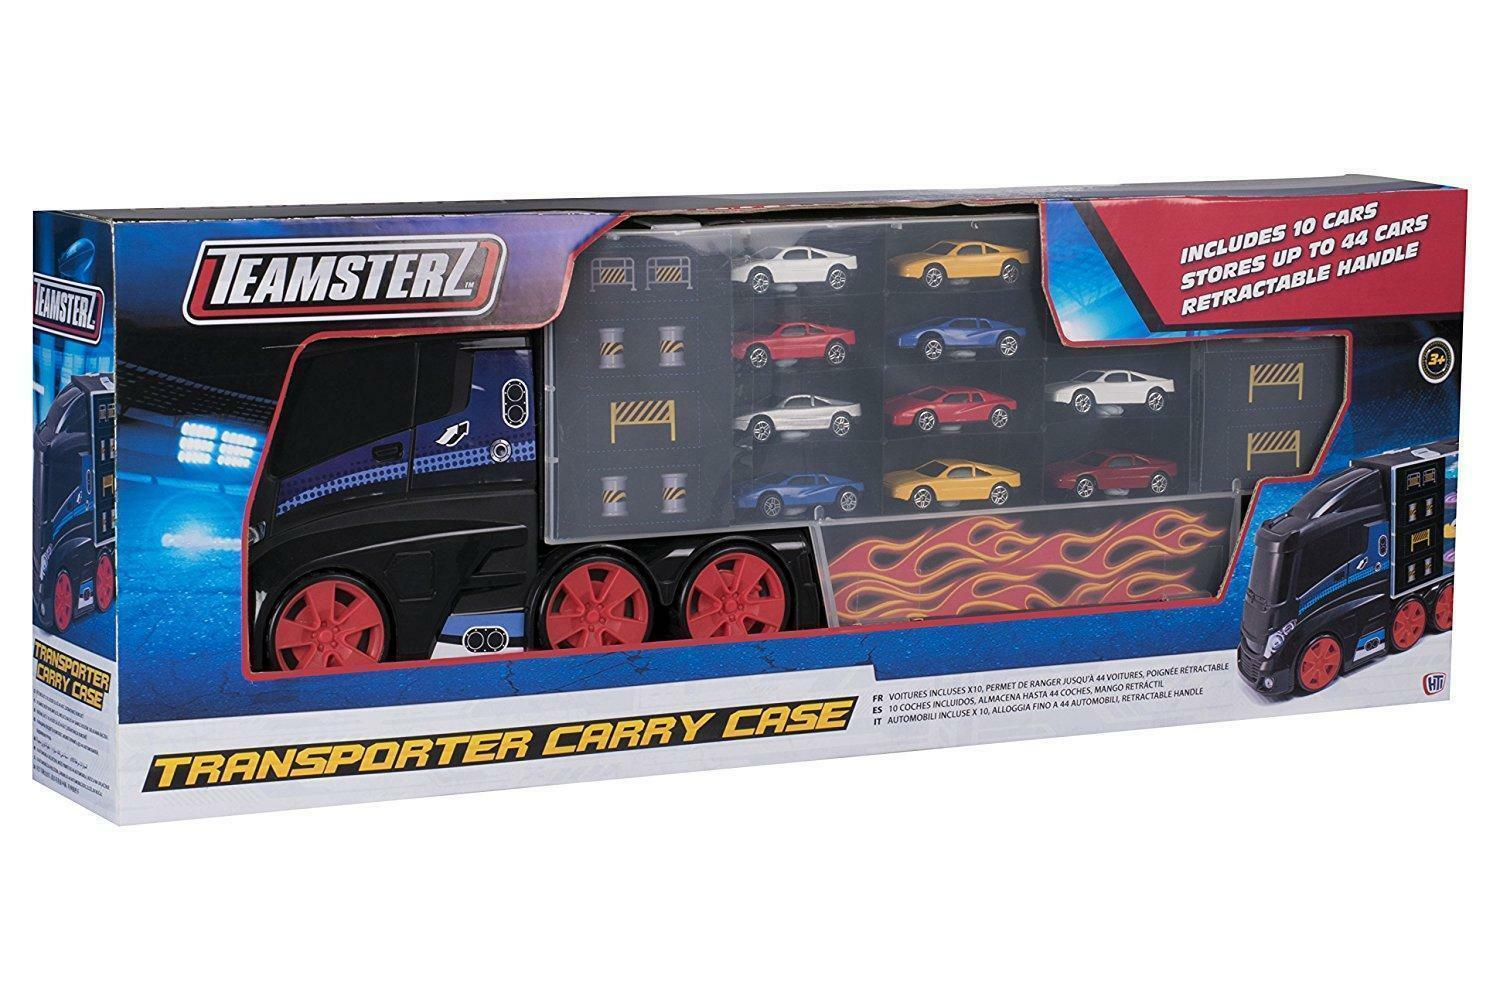 TEAMSTERS 10 CARS KIDS TOY GAME SET DIECAST CAR TRANSPORTER VEHICLE CARRY CASE